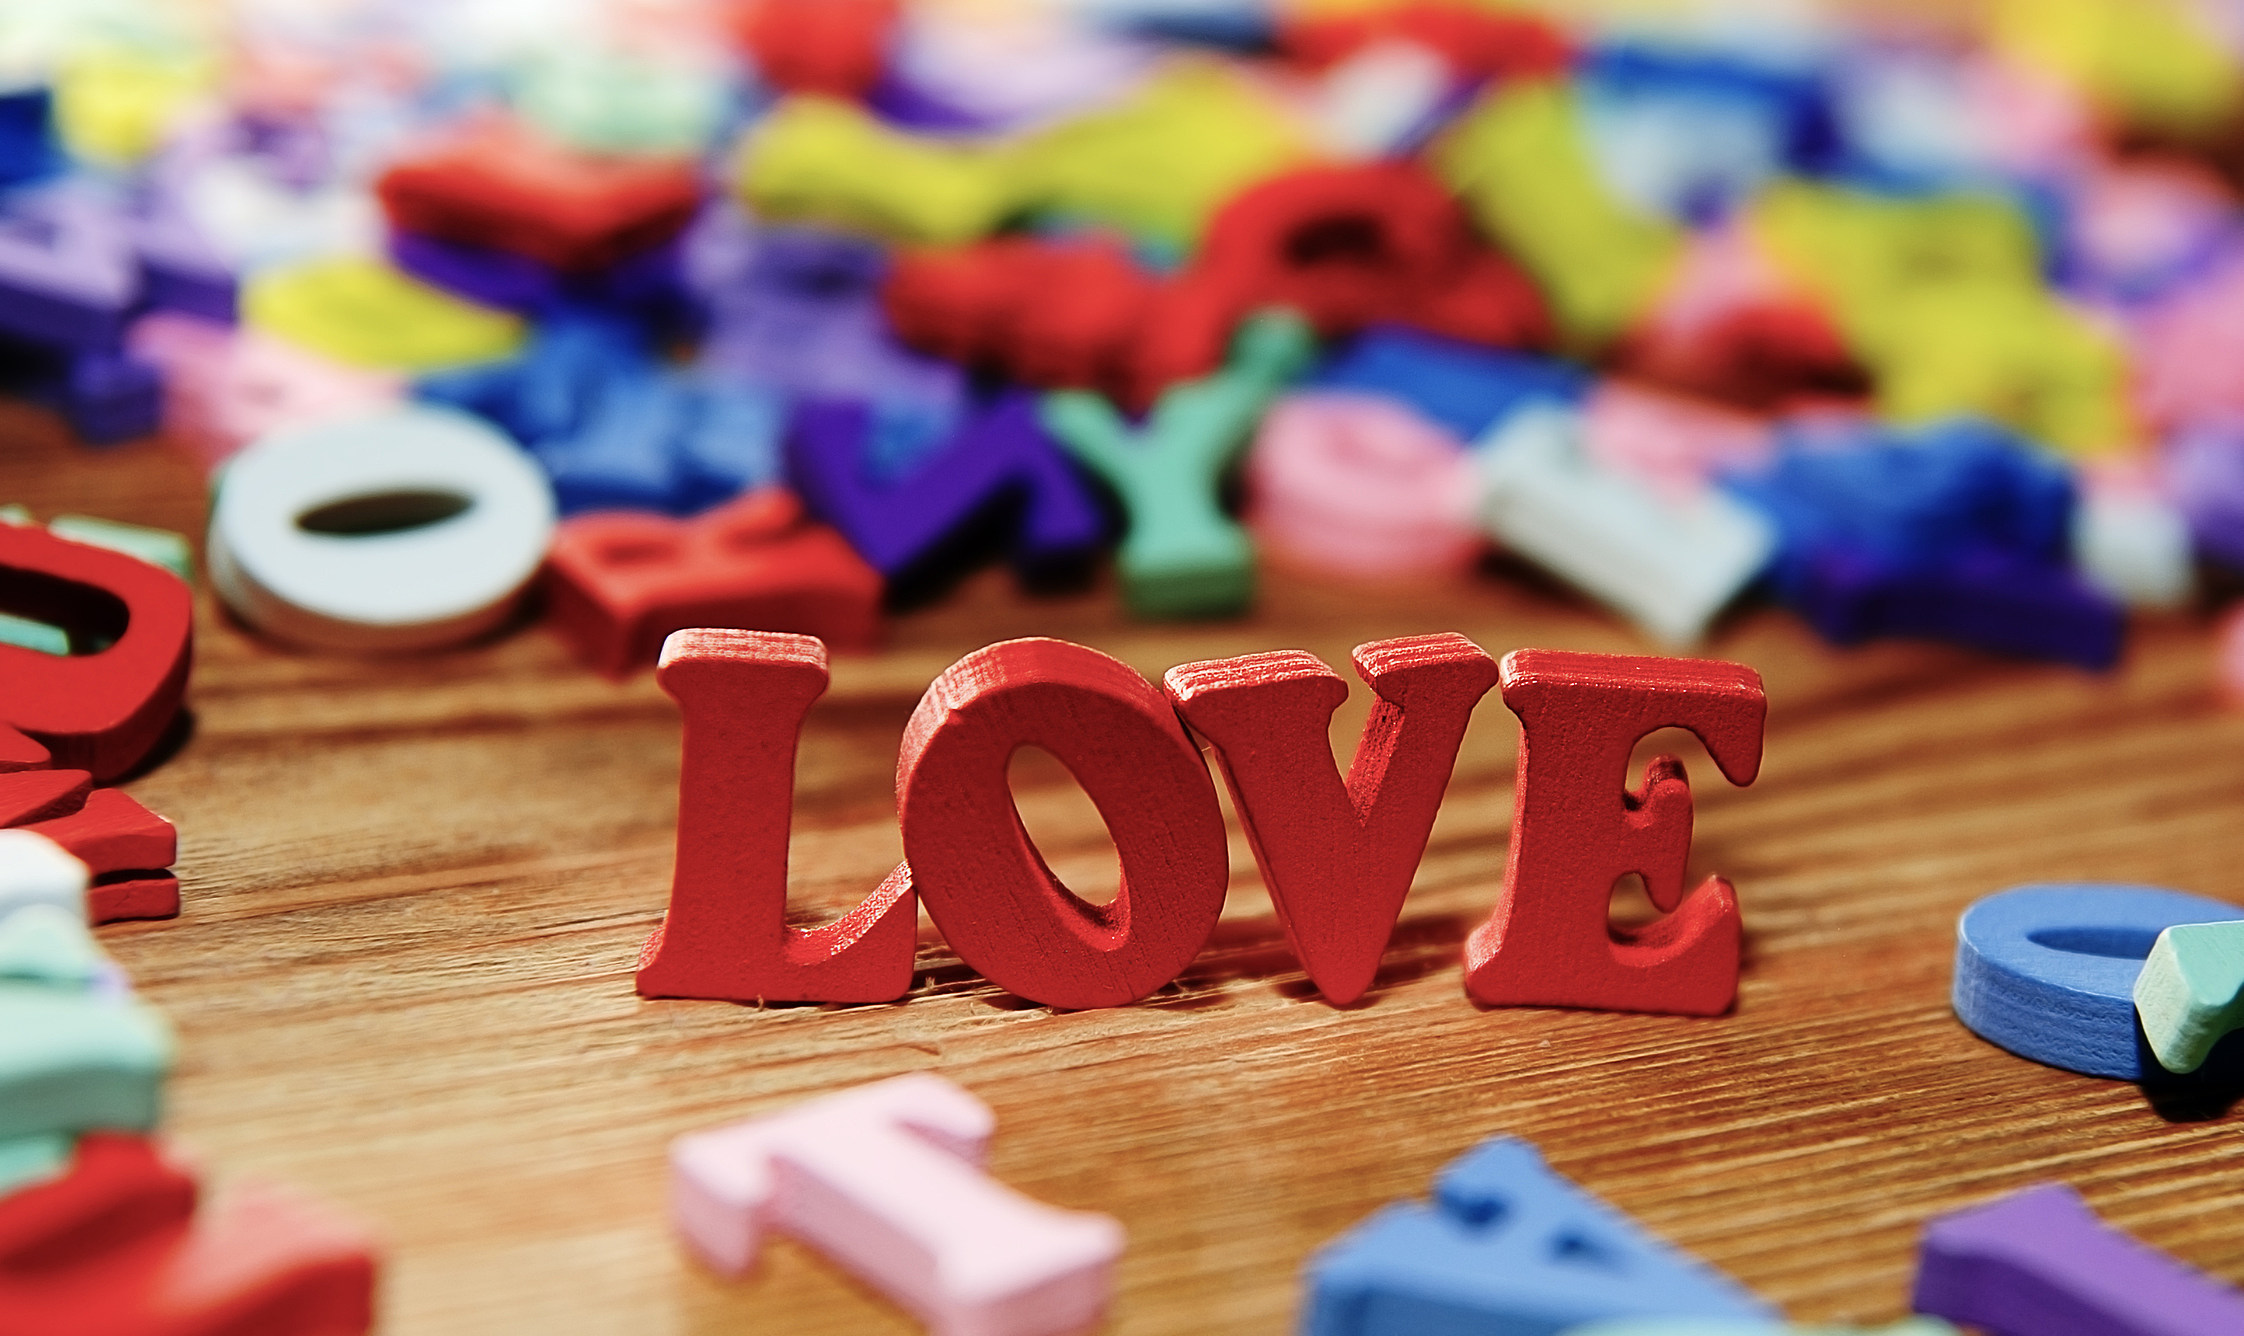 Love   letters      wood